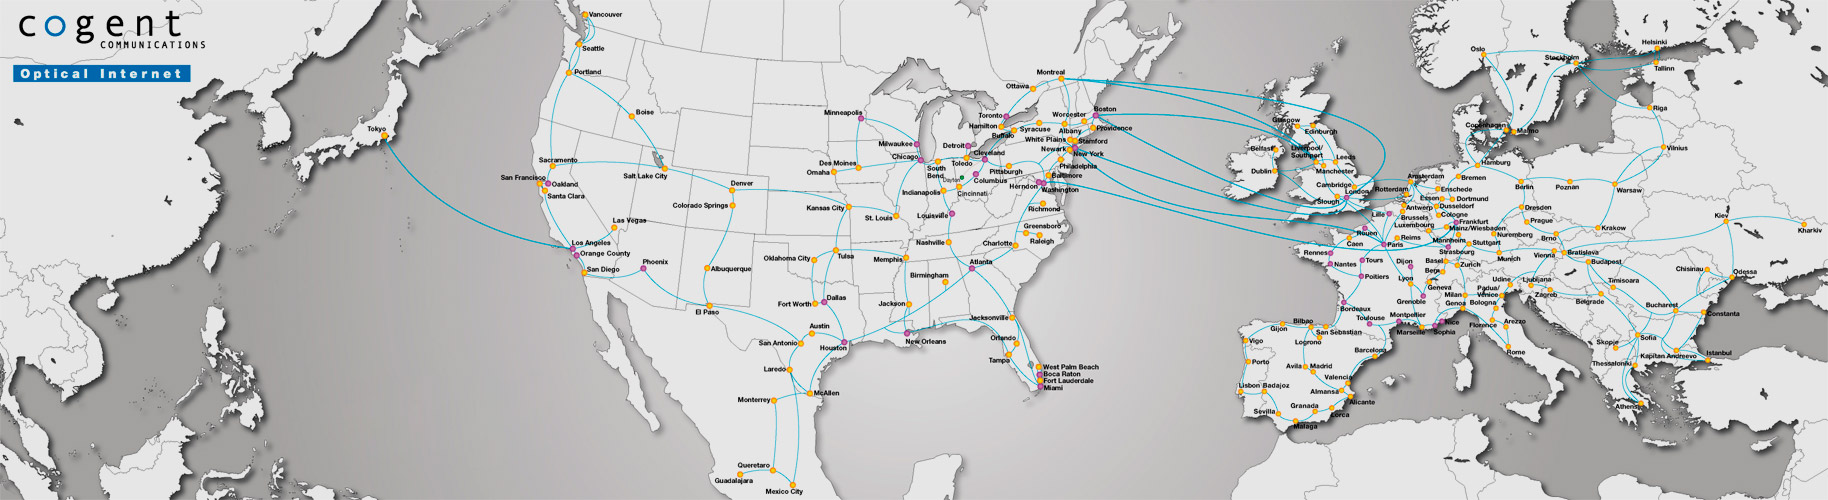 data-center-usa-europa-123